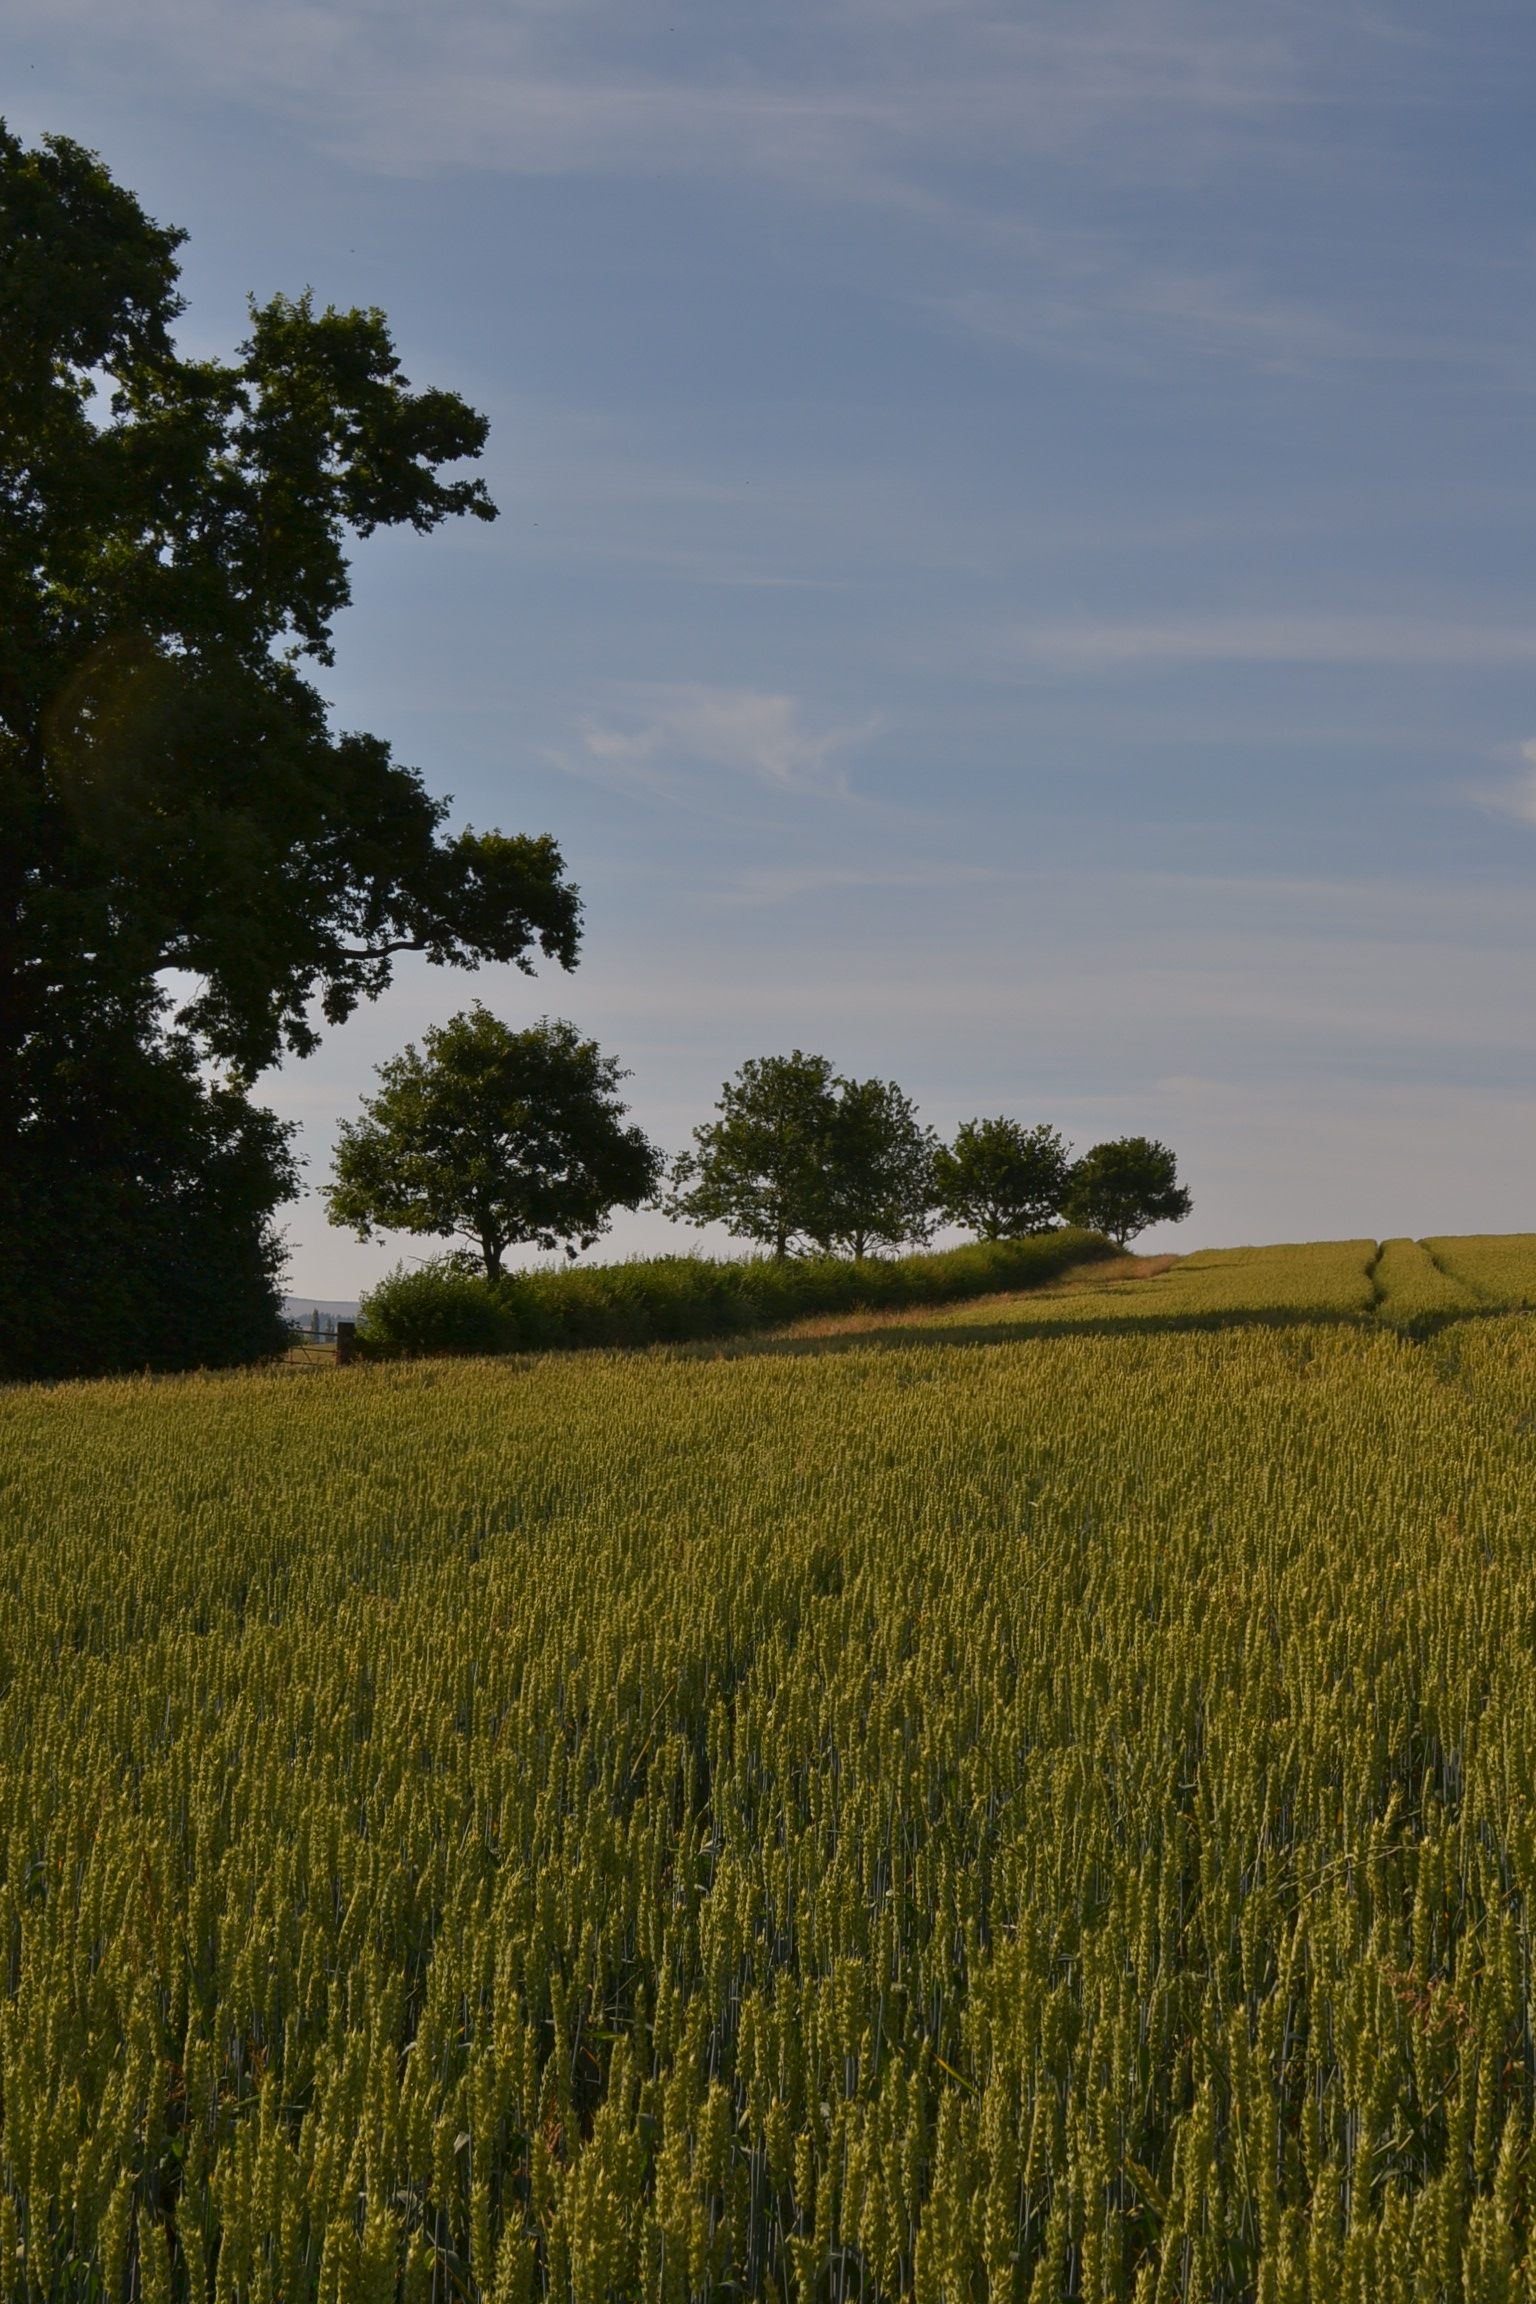 trees edging wheat field